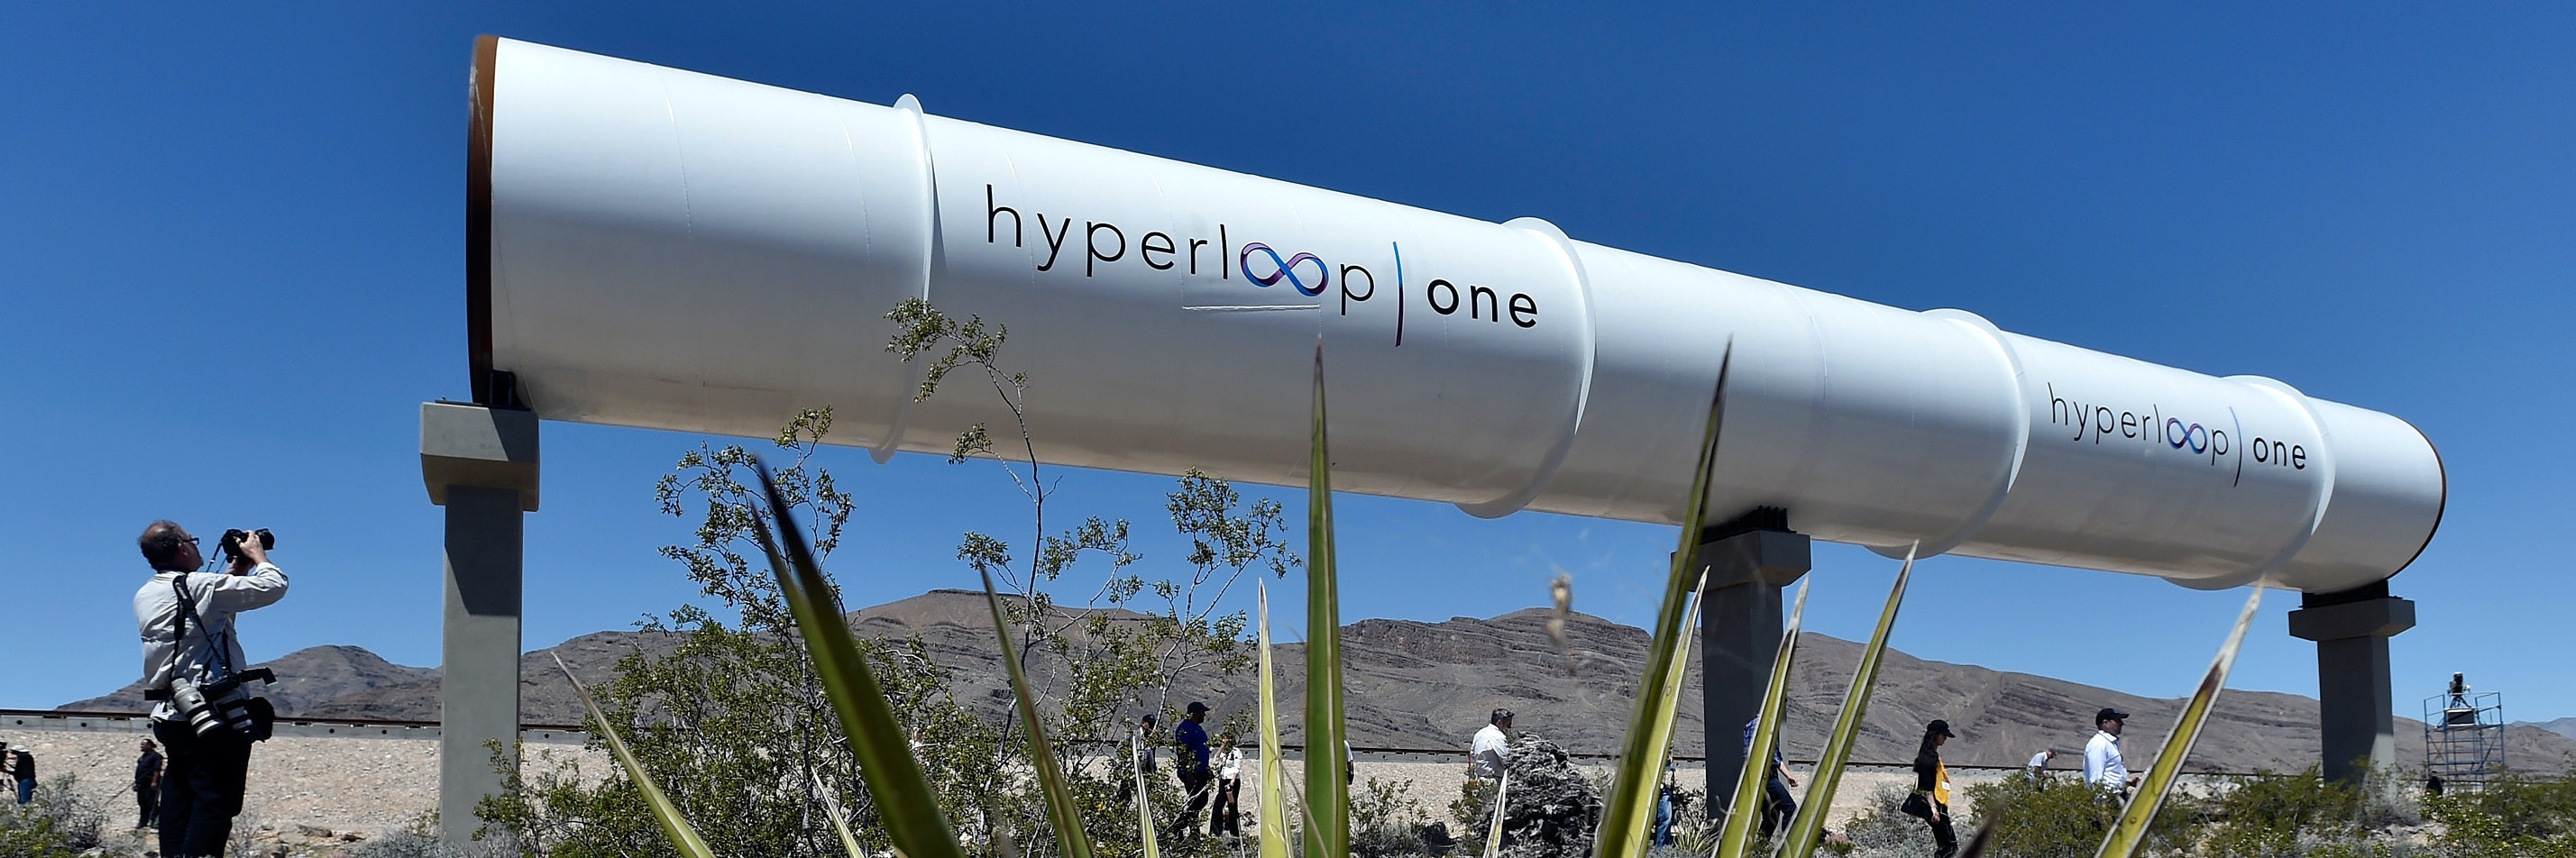 NORTH LAS VEGAS, NV - MAY 11:  Hyperloop tubes are displayed during the first test of the propulsion system at the Hyperloop One Test and Safety site on May 11, 2016 in North Las Vegas, Nevada. The company plans to create a fully operational hyperloop system by 2020.  (Photo by David Becker/Getty Images,)